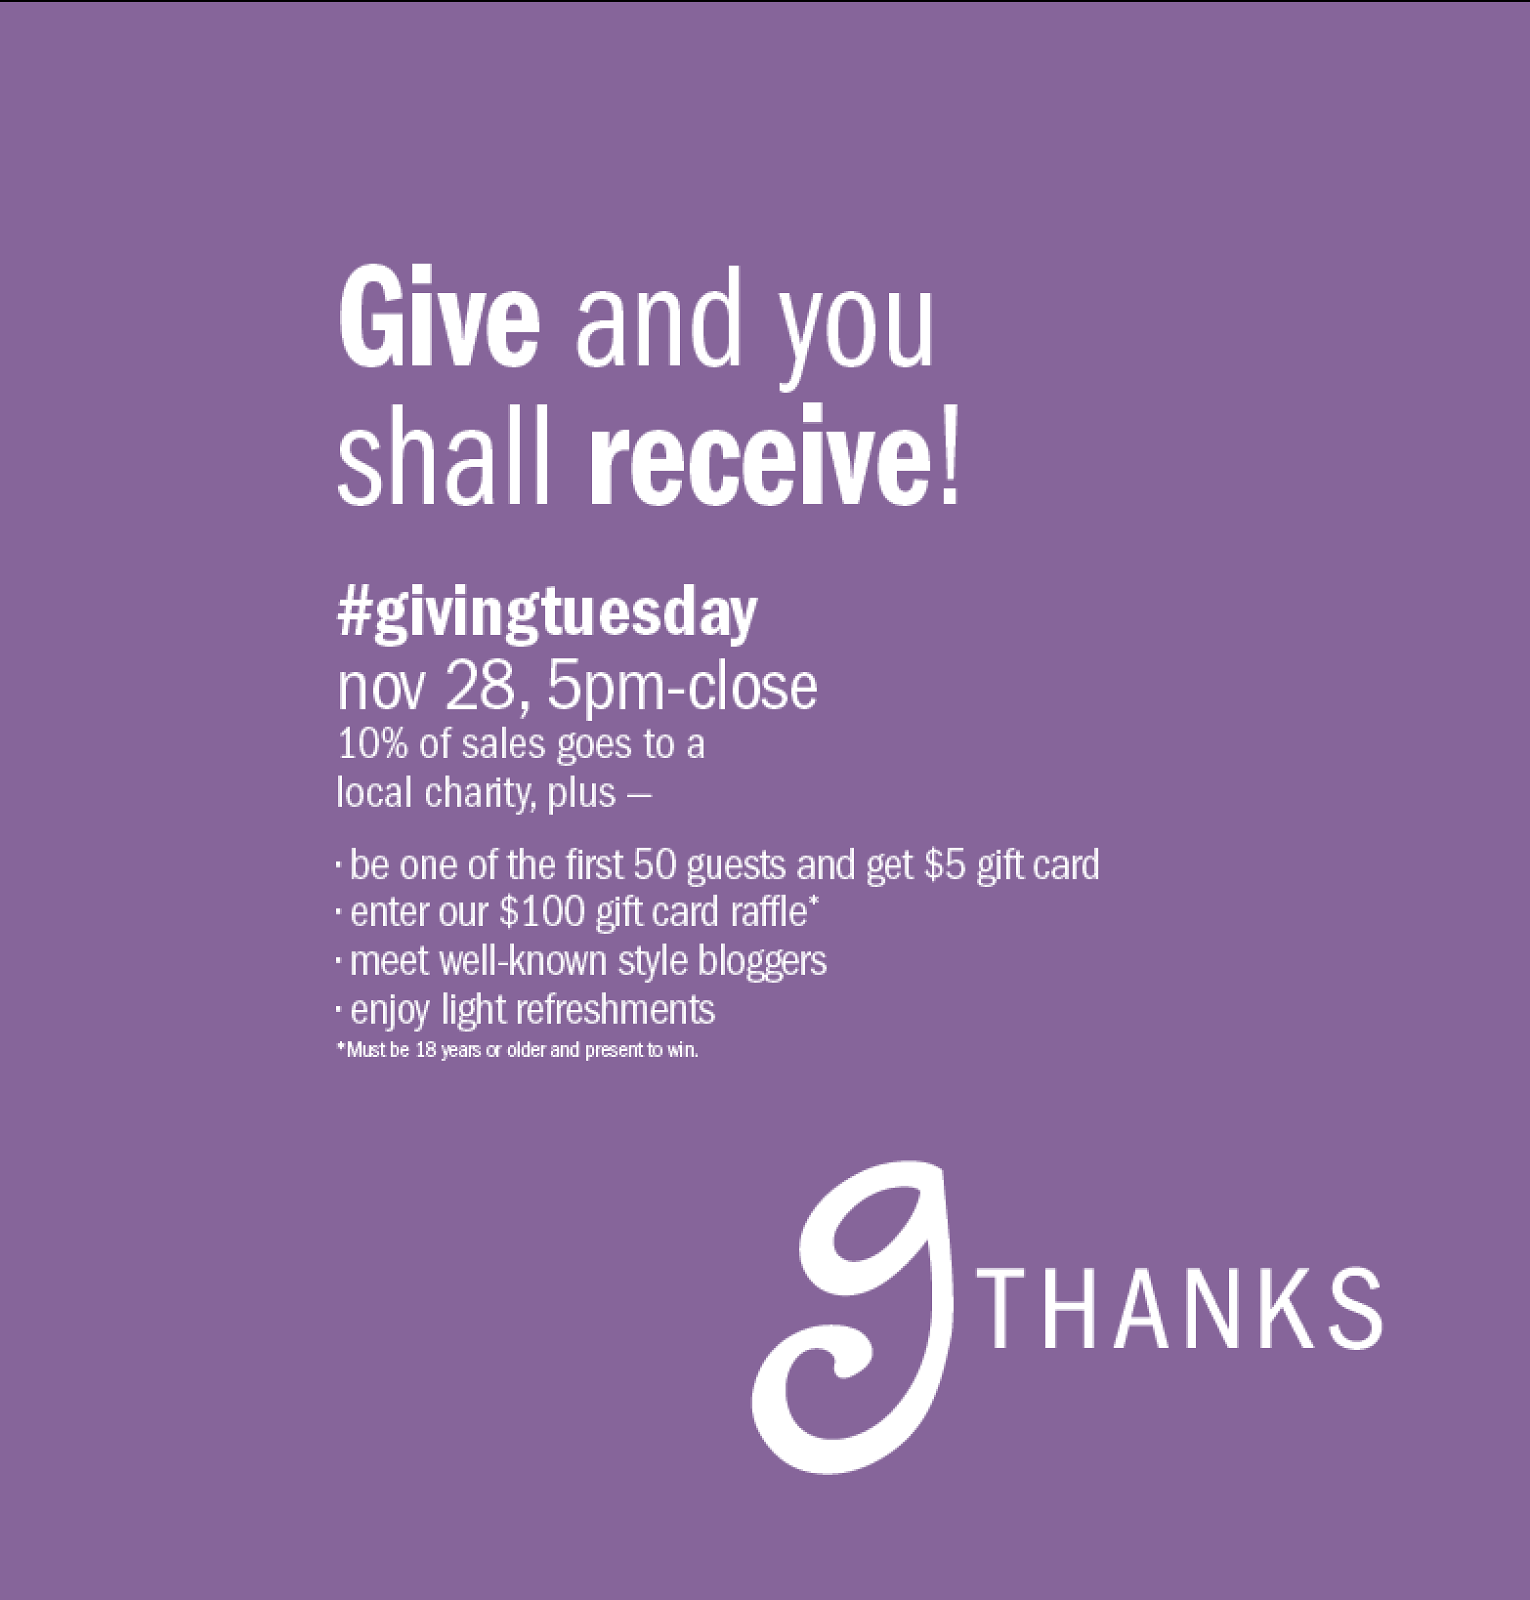 Gordmans gTHANKS event